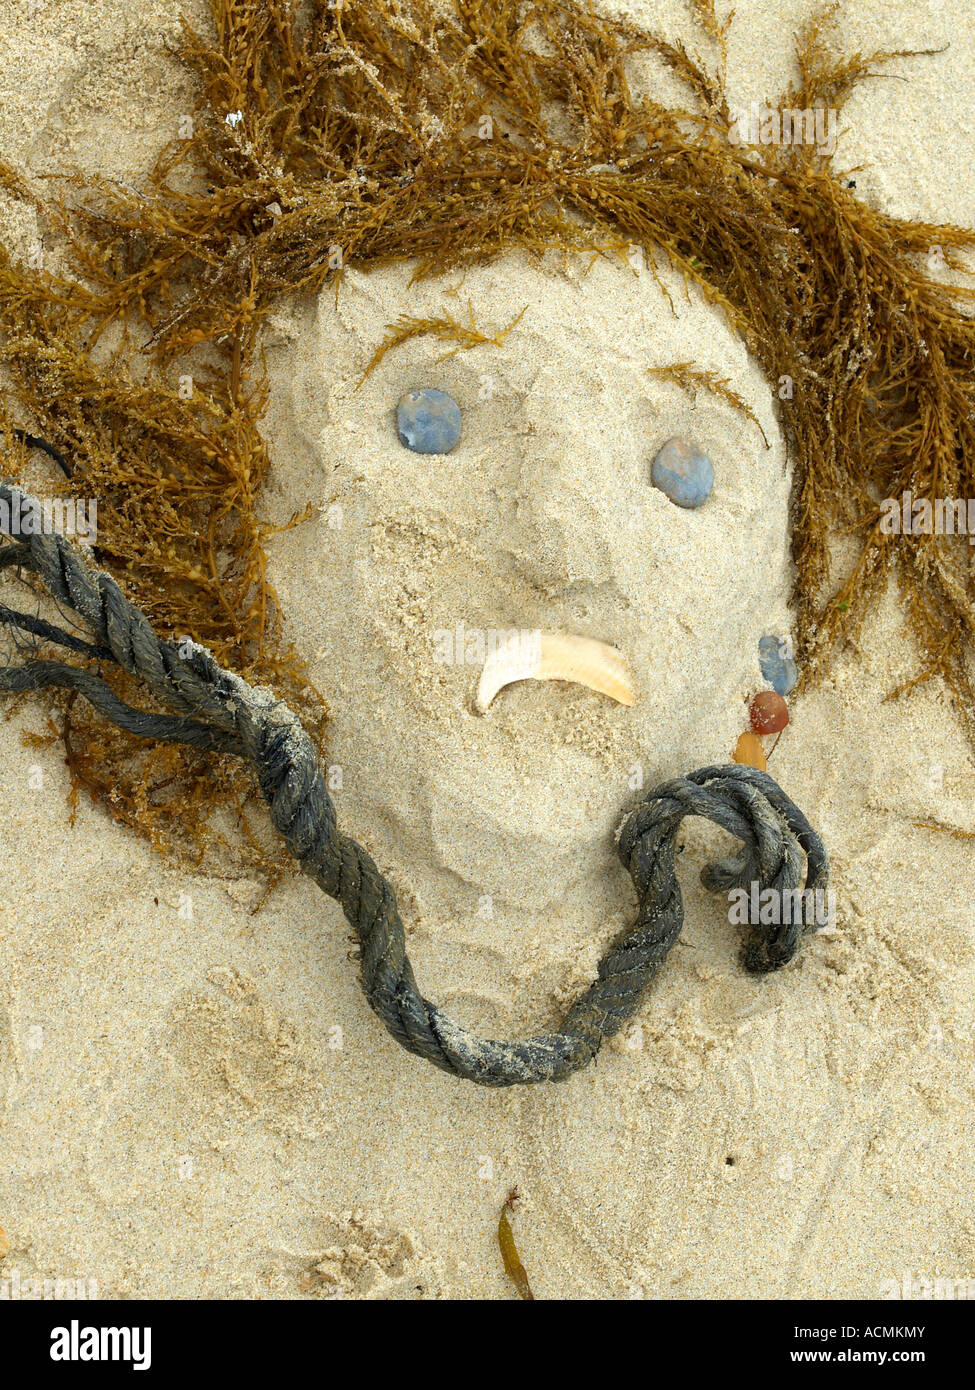 figure of a sad woman face sculptured on Sand with seaweed alga as hair - Stock Image